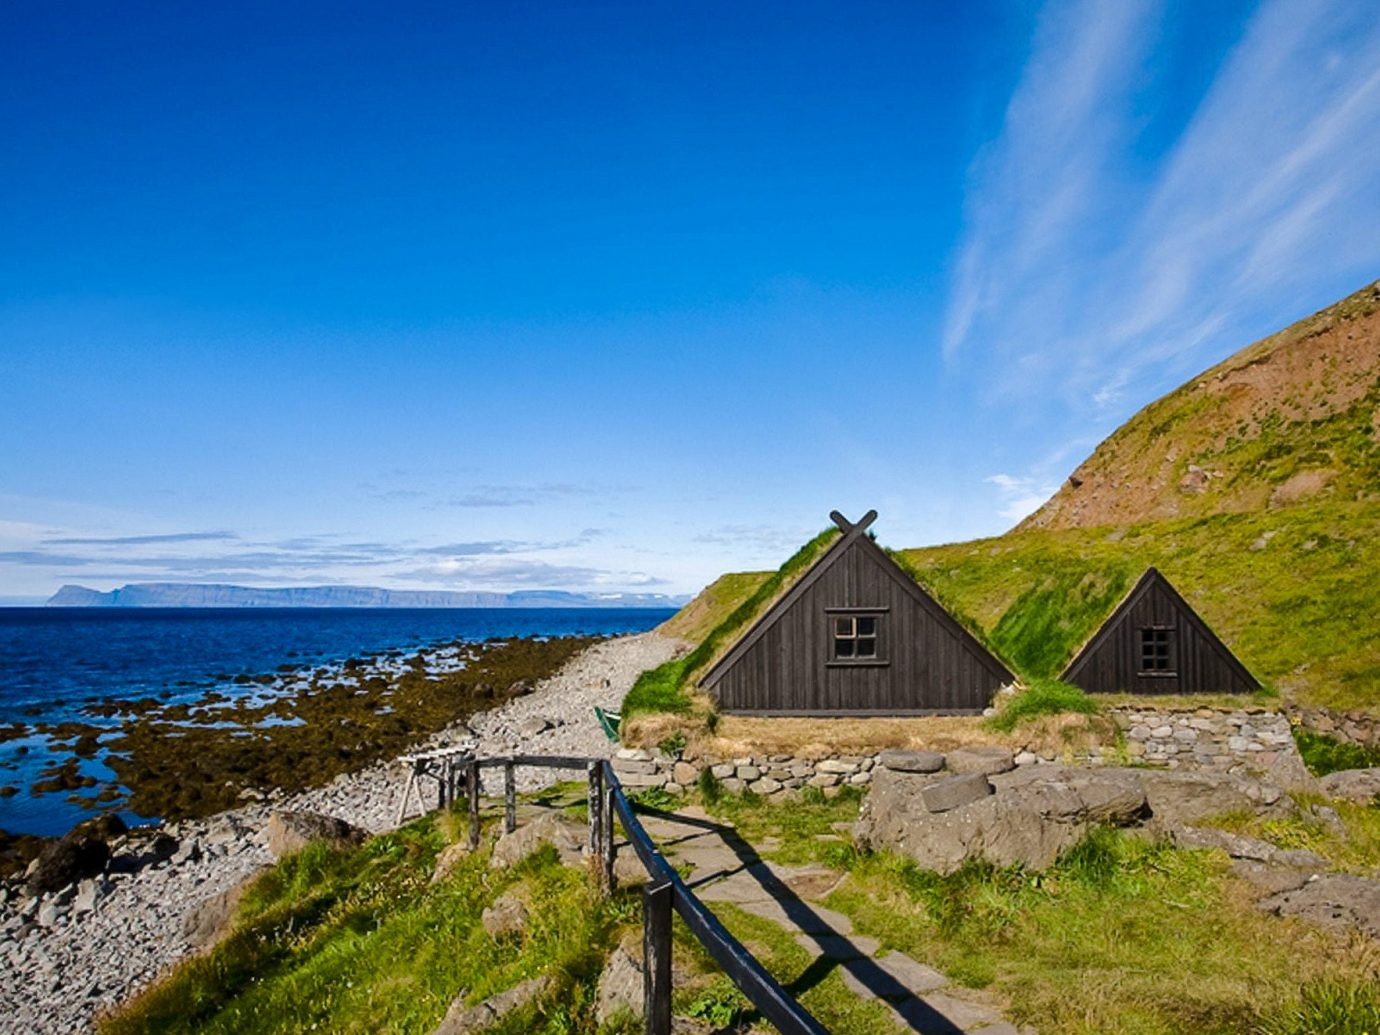 Iceland Travel Tips grass sky outdoor mountainous landforms mountain Sea landform Coast geographical feature Ocean vacation cloud horizon hill house shore Nature landscape cliff mountain range rock rural area cape terrain bay hillside stone lush highland